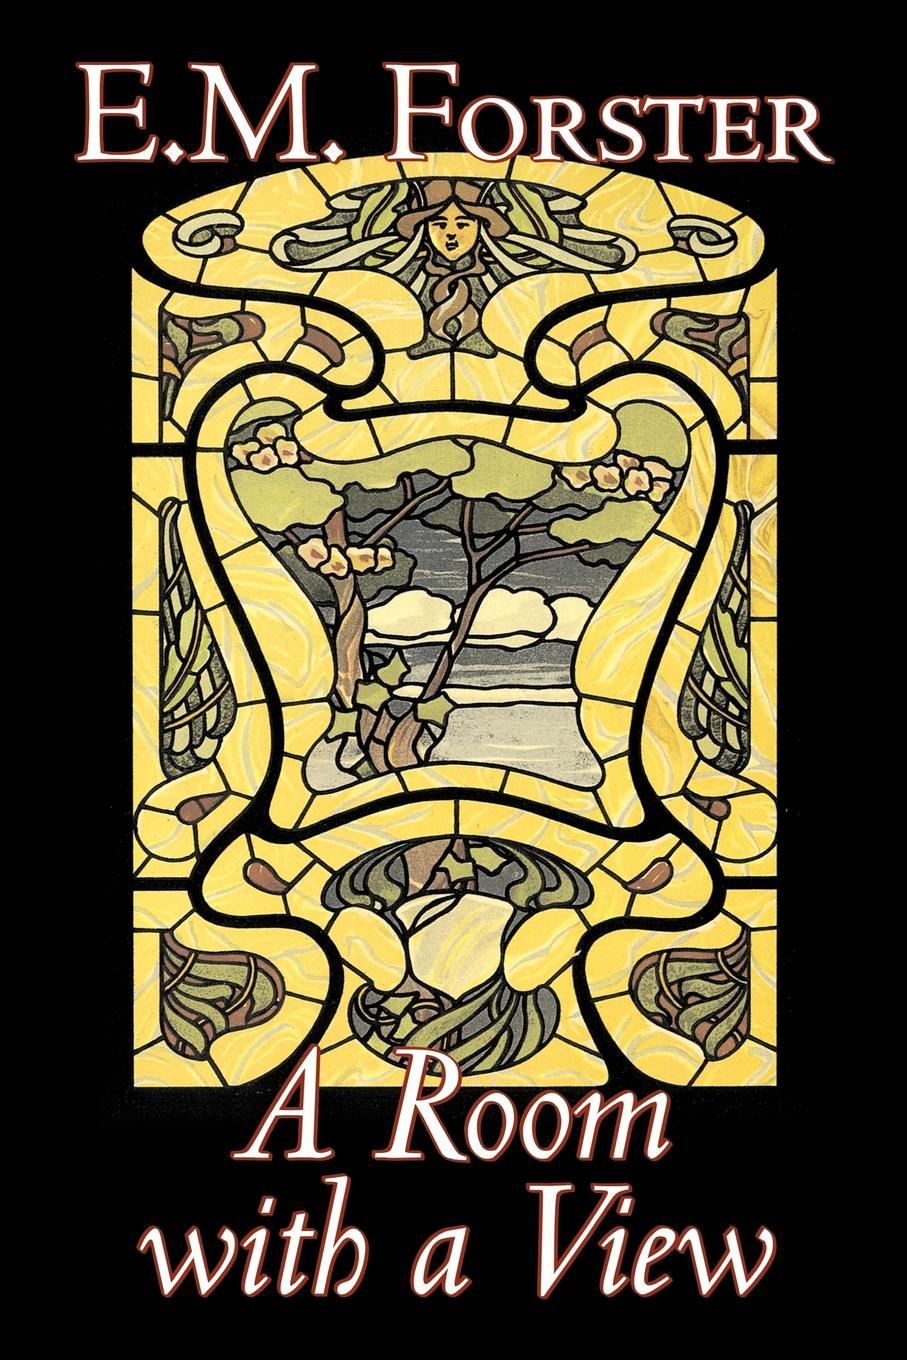 где купить E. M. Forster A Room with a View by E.M. Forster, Fiction, Classics по лучшей цене